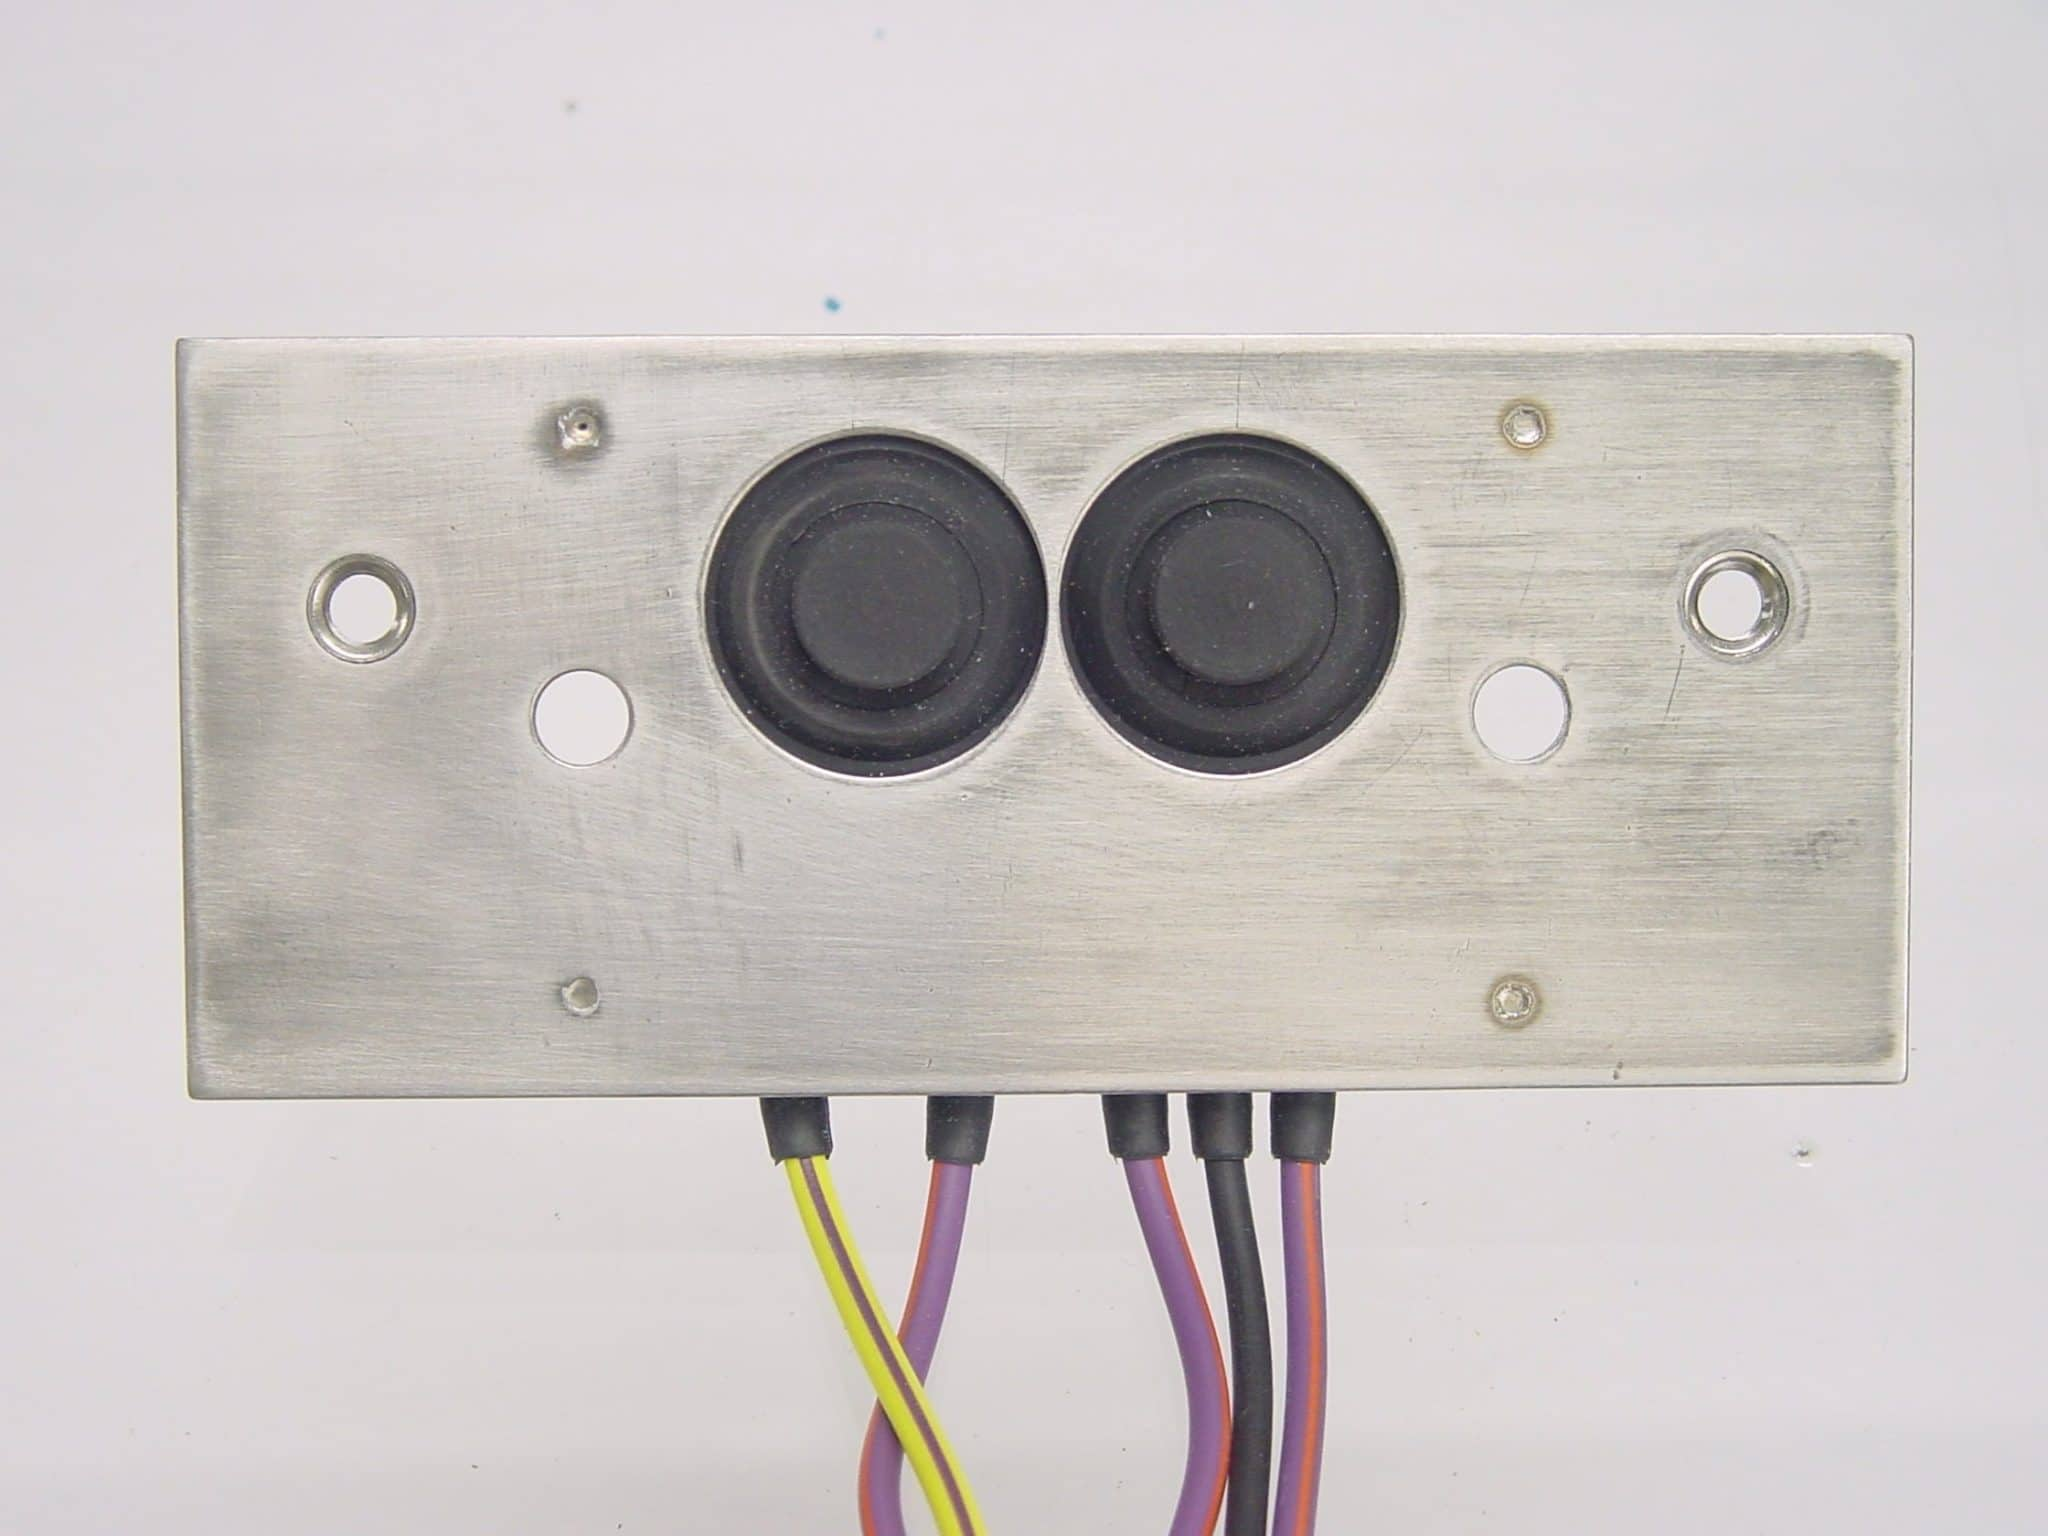 Waterproof Marine Switches Custom Switch Panels Thread In Cab Winch Control Cpi Panel